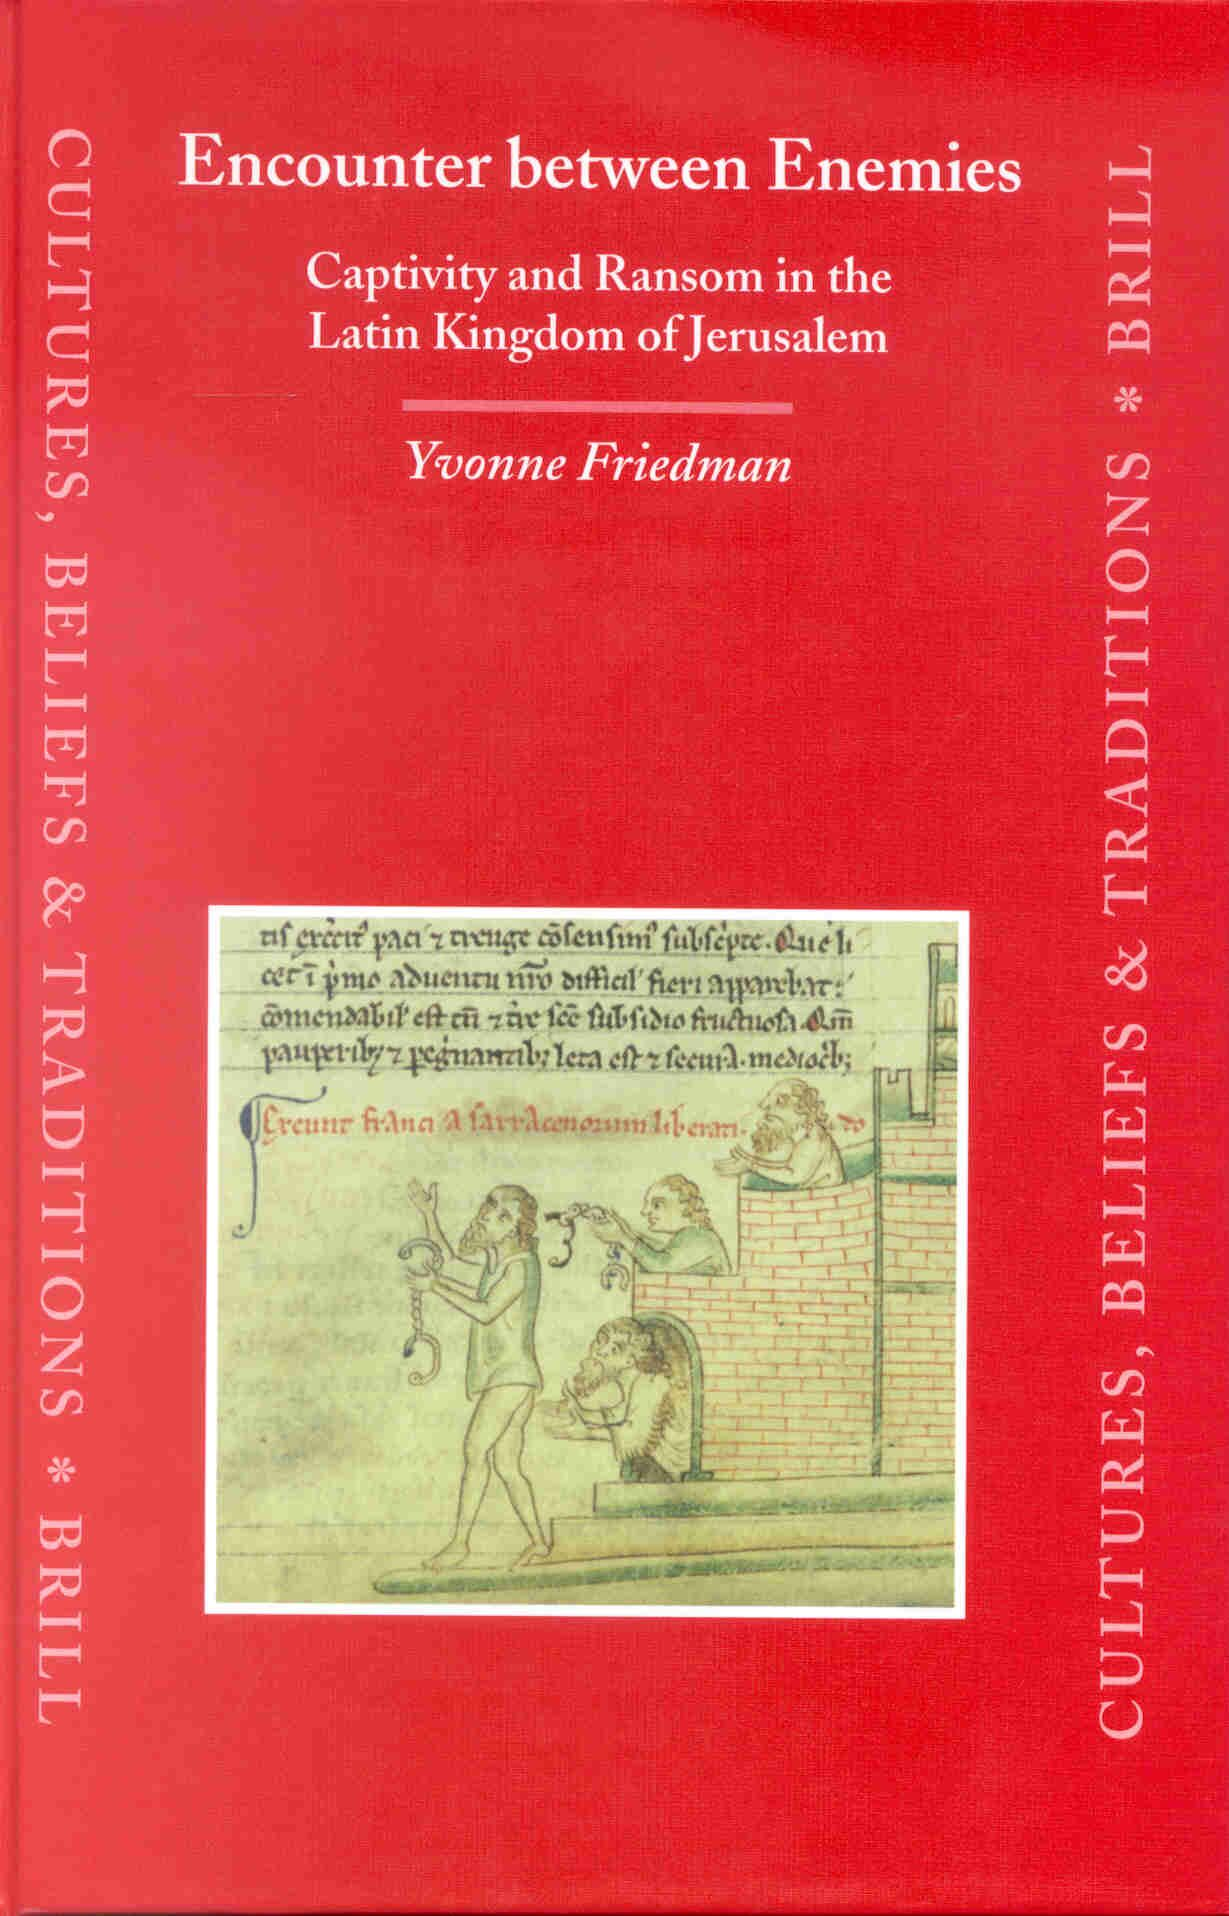 Encounter Between Enemies: Captivity and Ransom in the Latin Kingdom of Jerusalem